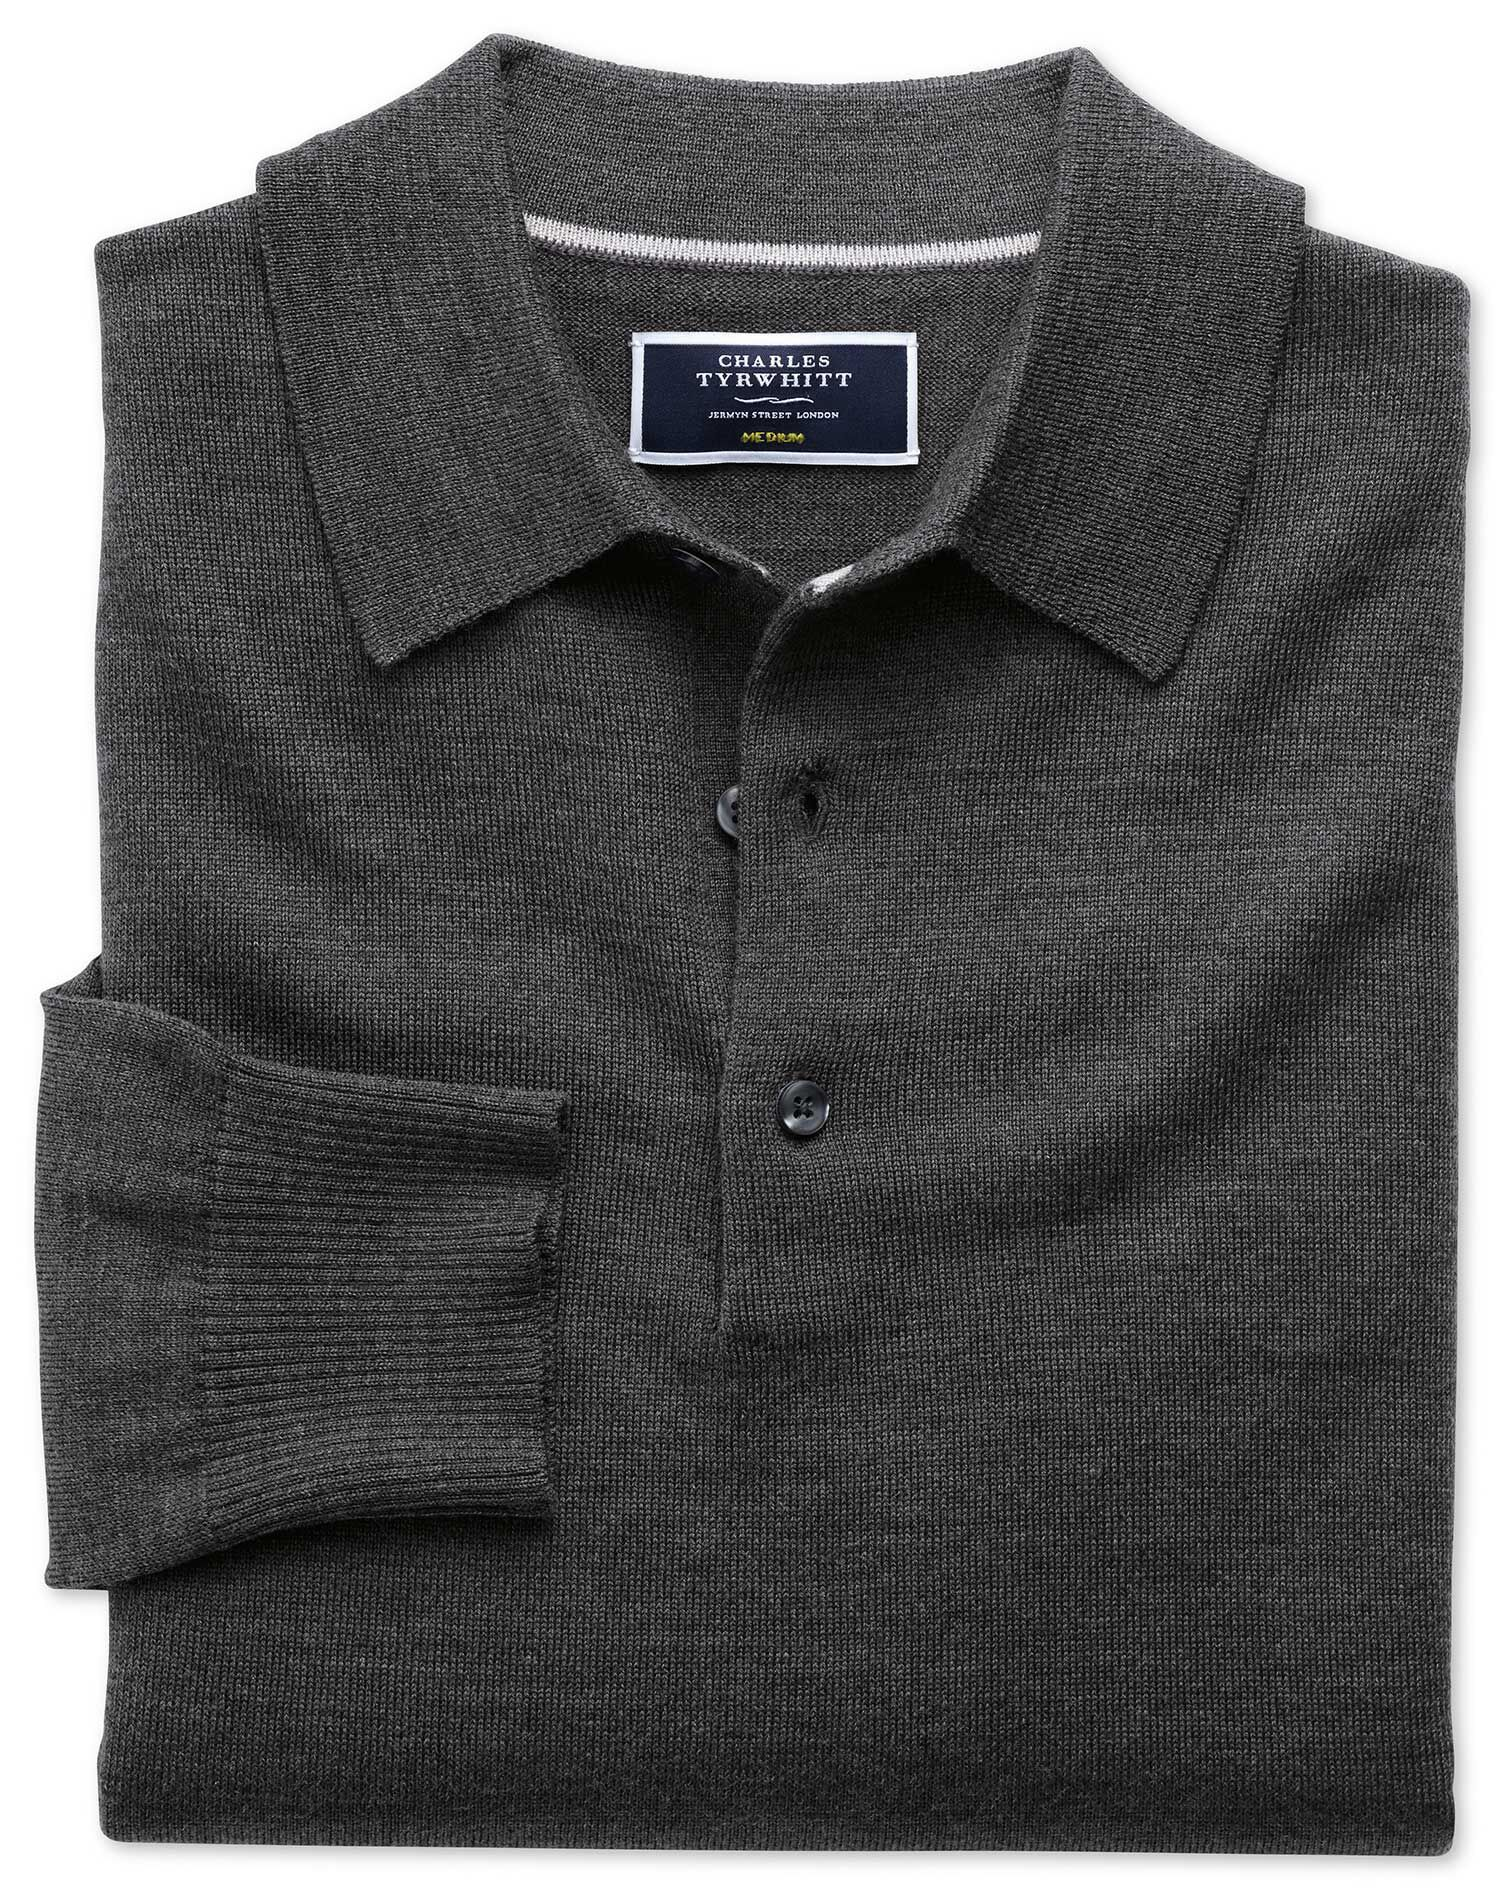 Charles Tyrwhitt Charcoal Merino Wool Polo Neck Jumper Size Large